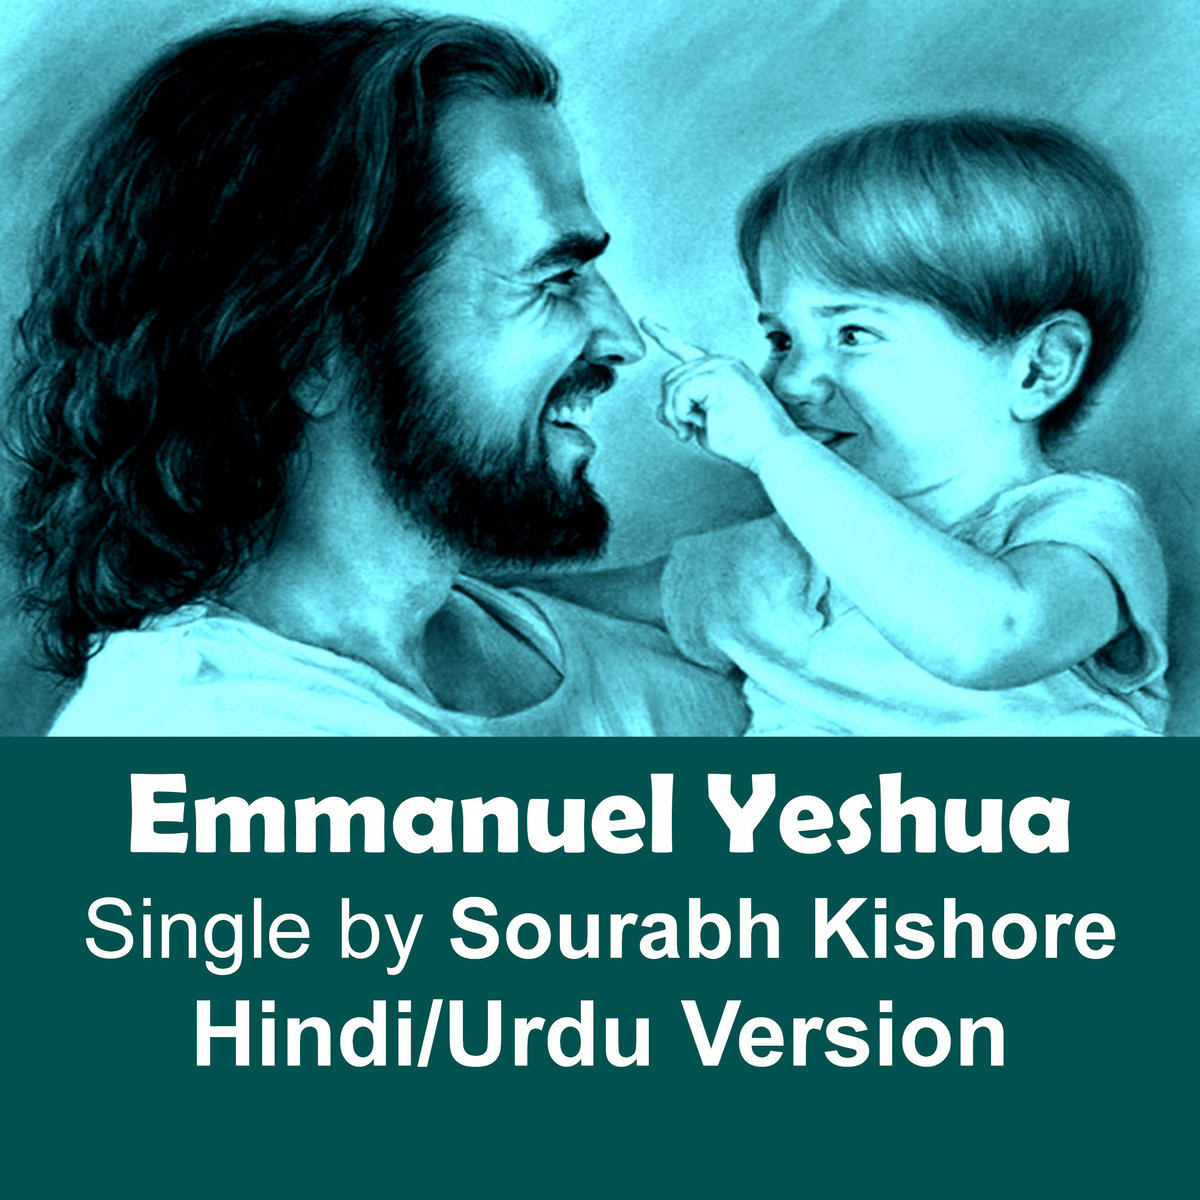 Emmanuel Yehshua Emmanuel Jesus Christ Hindi Urdu Christian Prayer Song Sourabh Kishore Pop Rock For Humanity Videos are shared from the verified youtube channels of the song owners. emmanuel yehshua emmanuel jesus christ hindi urdu christian prayer song